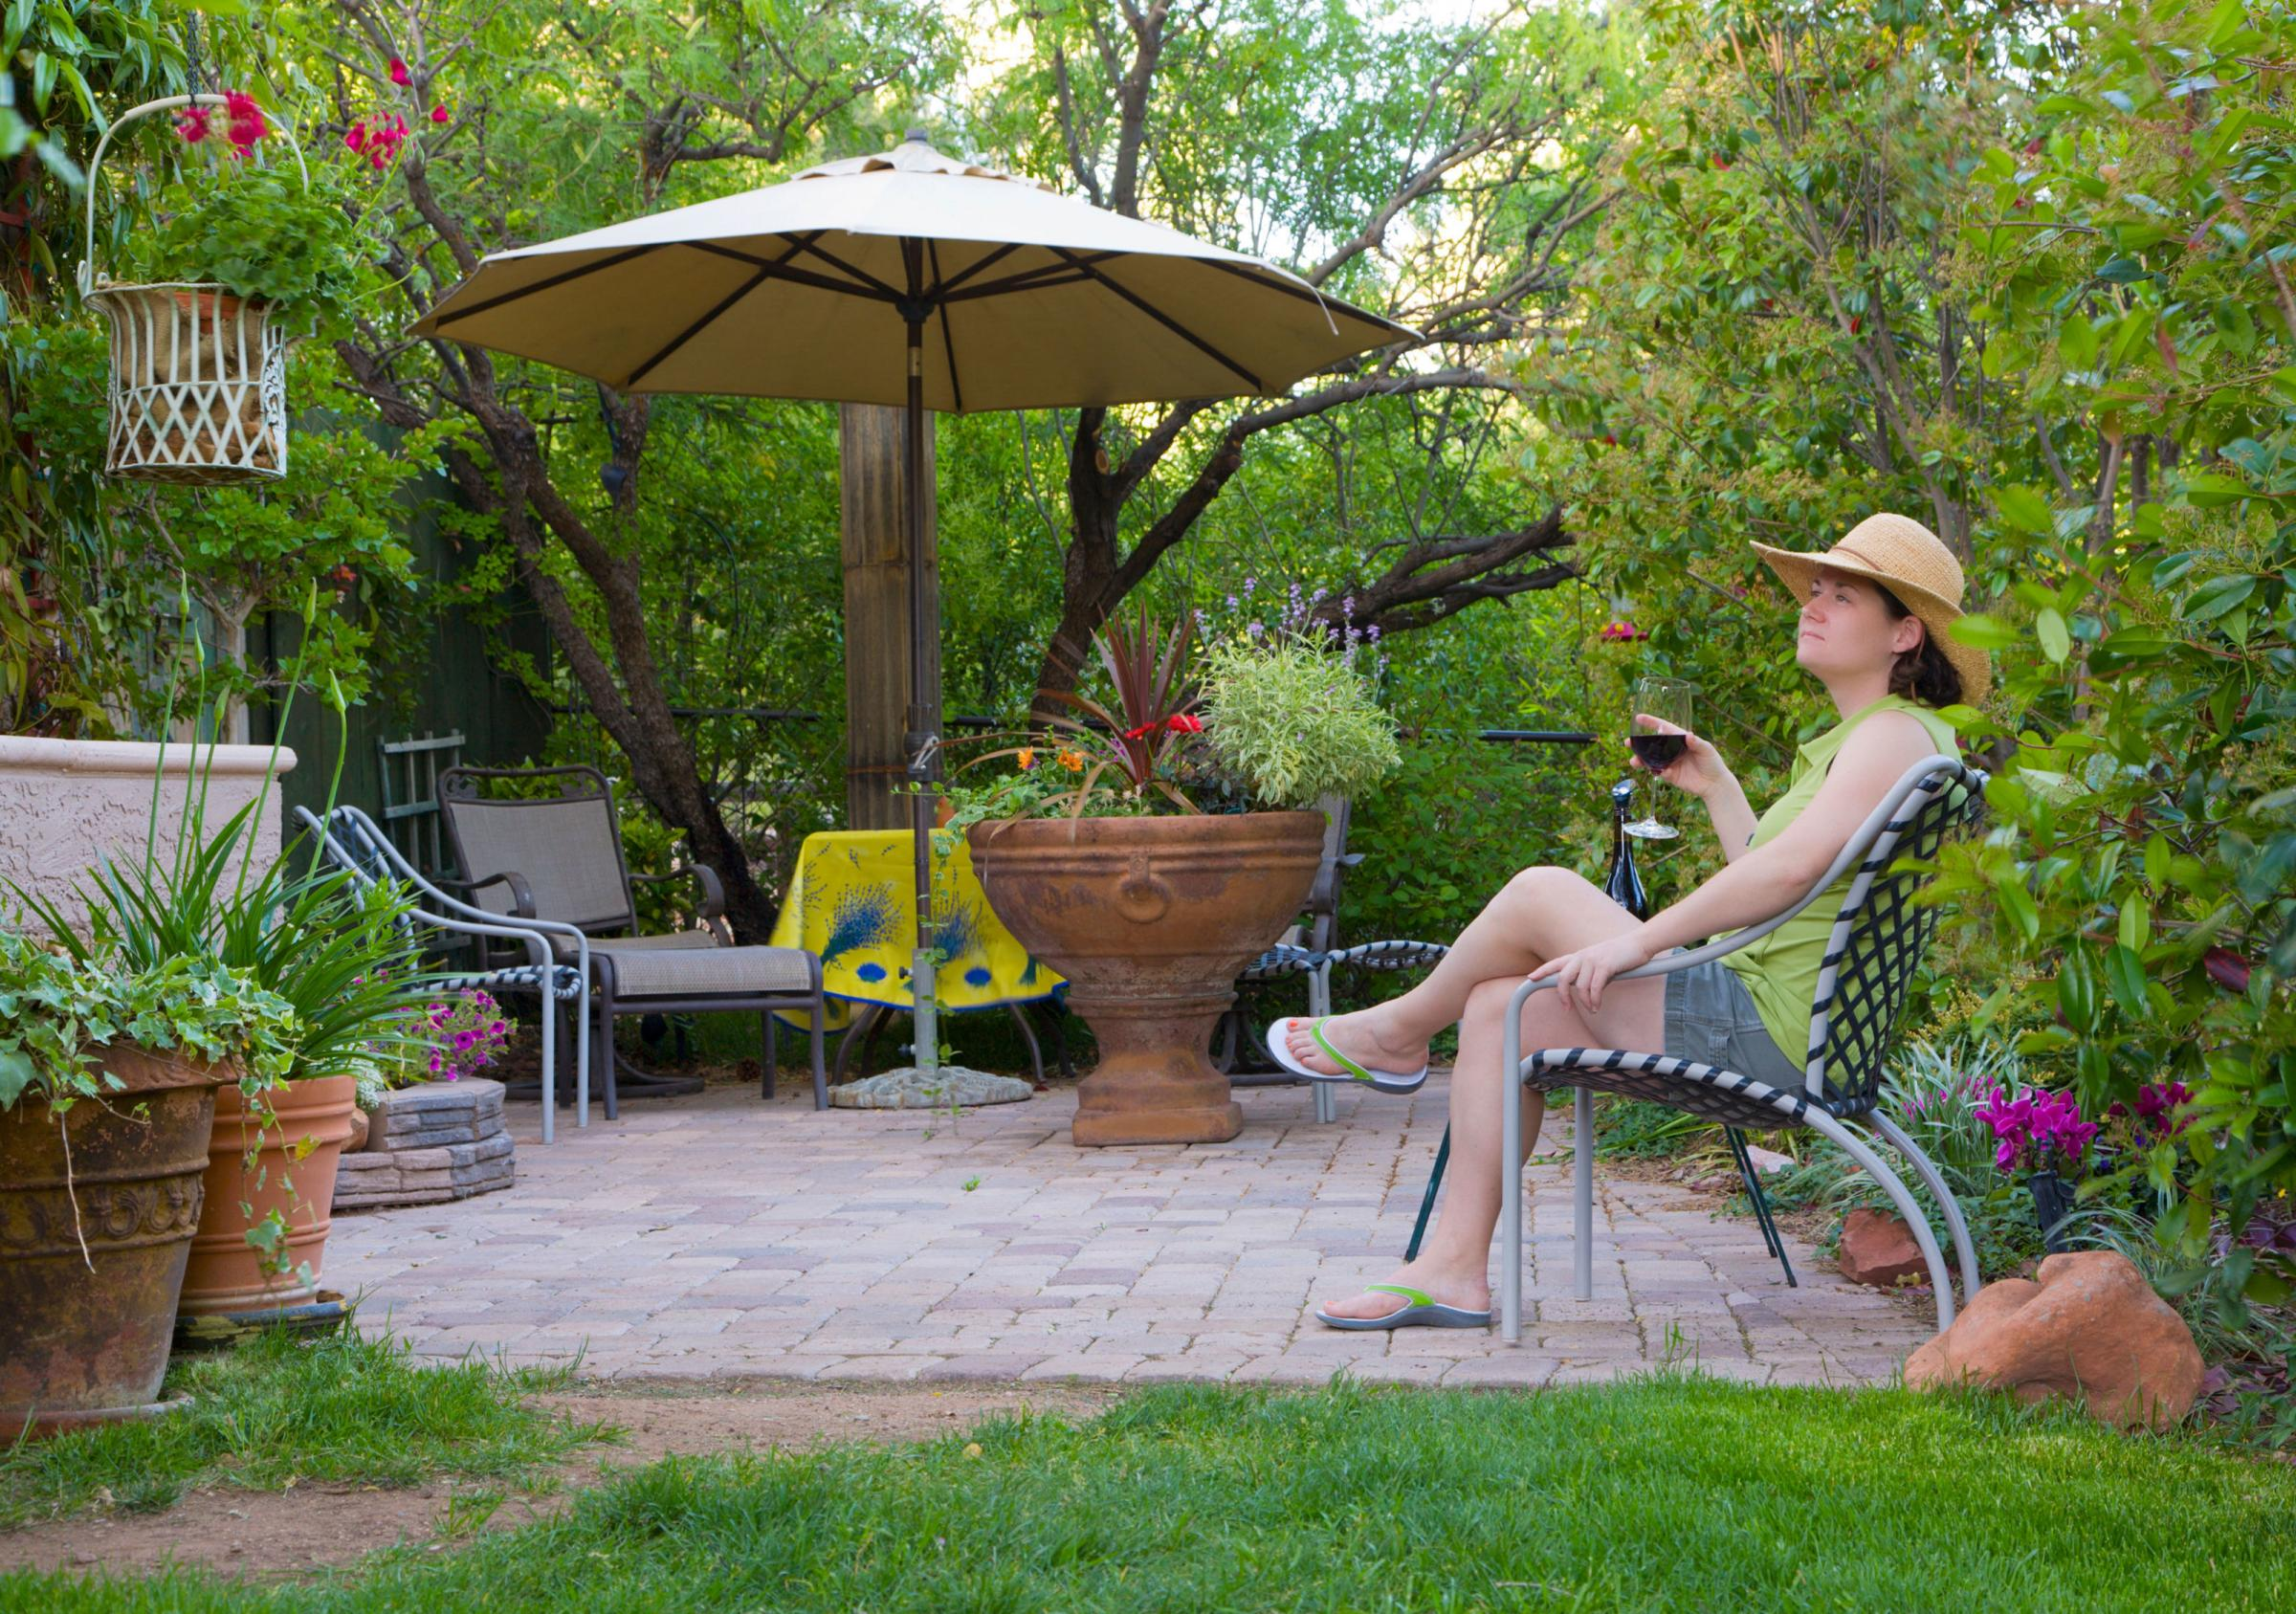 Generic stock photo to illustrate garden items in spring. See PA Feature FINANCE Garden Protection. Picture credit should read: Alamy/PA. WARNING: This picture must only be used to accompany PA Feature FINANCE Garden Protection.